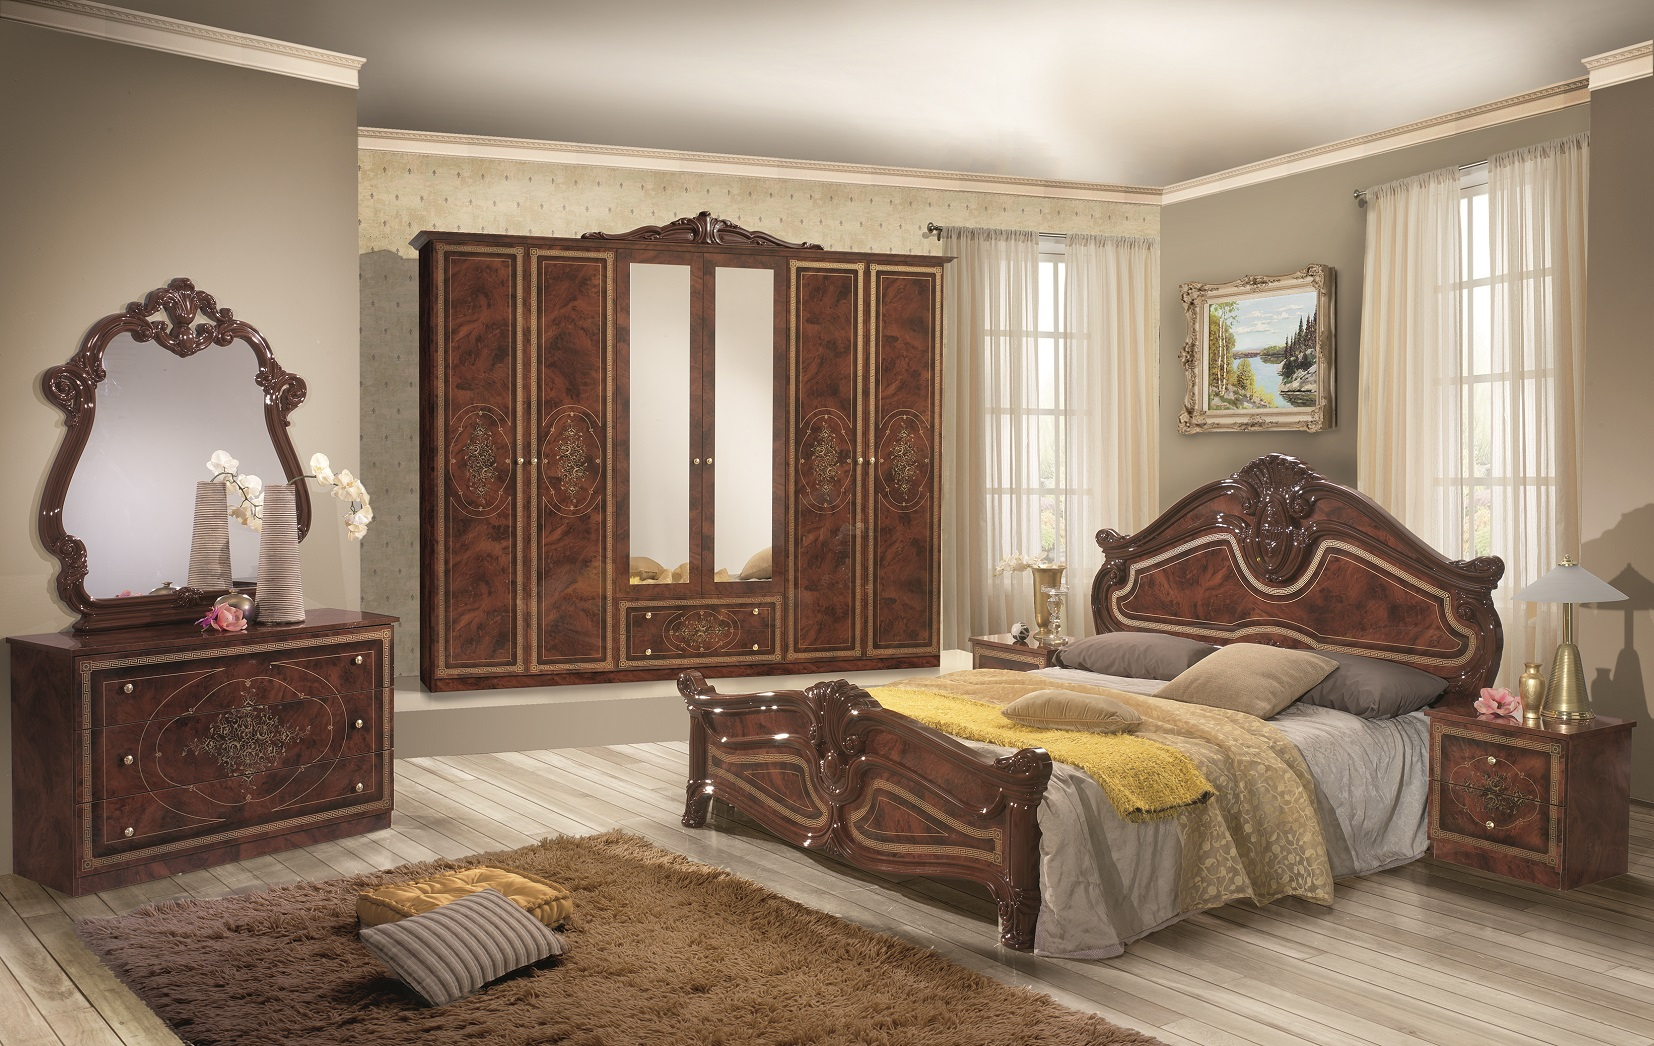 g nstiges schlafzimmer barock schlafzimmer klassich schlafzimmer. Black Bedroom Furniture Sets. Home Design Ideas